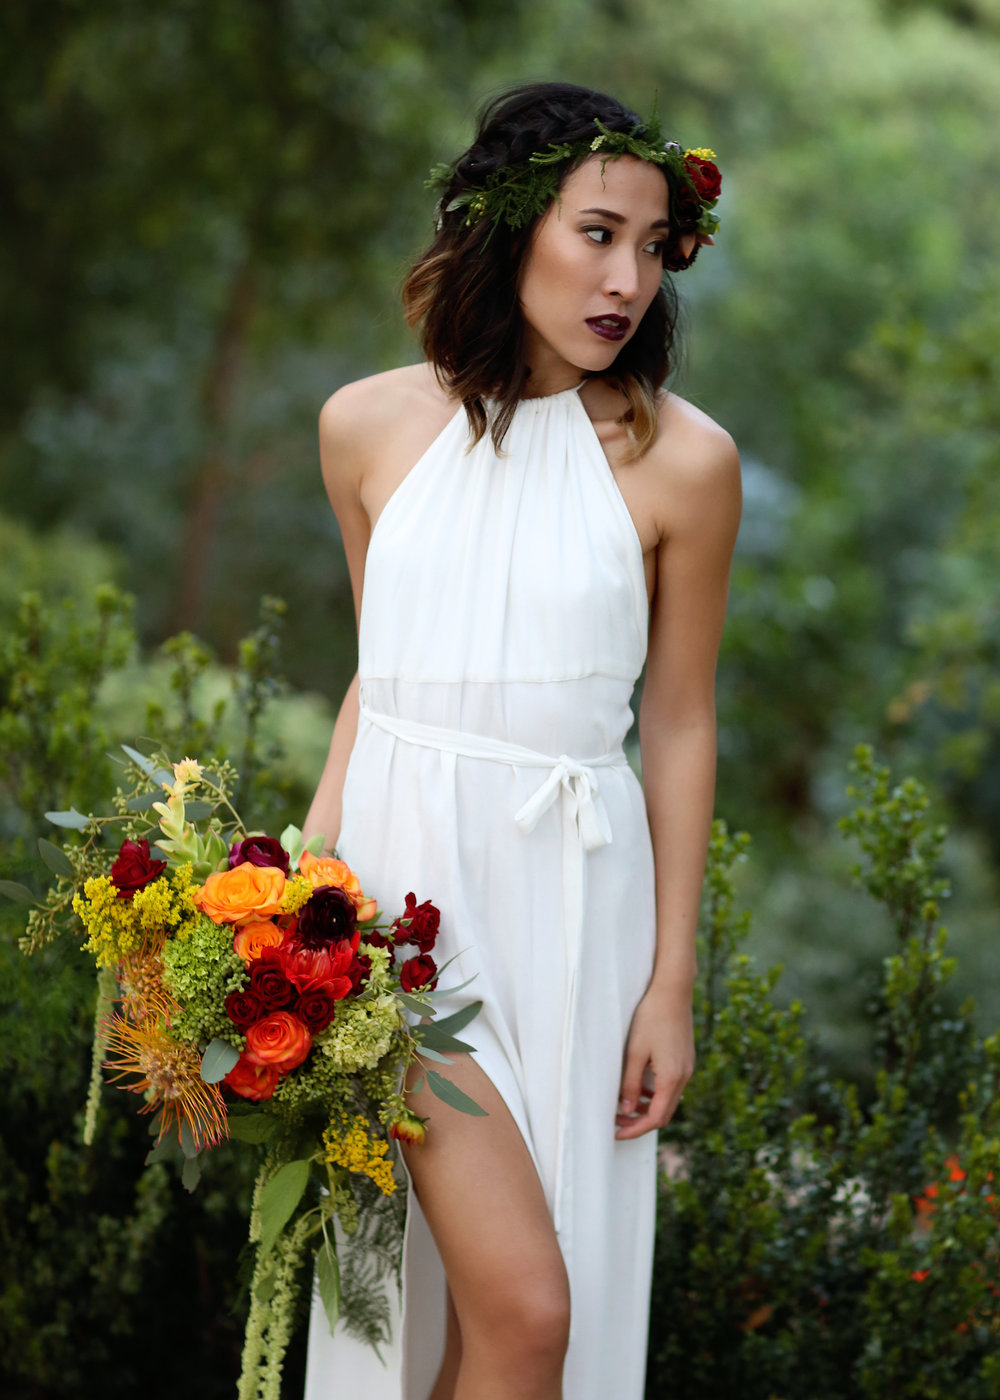 Boho Wedding Dress - A Modern Bohemian Outdoor Wedding Shoot - Bleudog Fotography